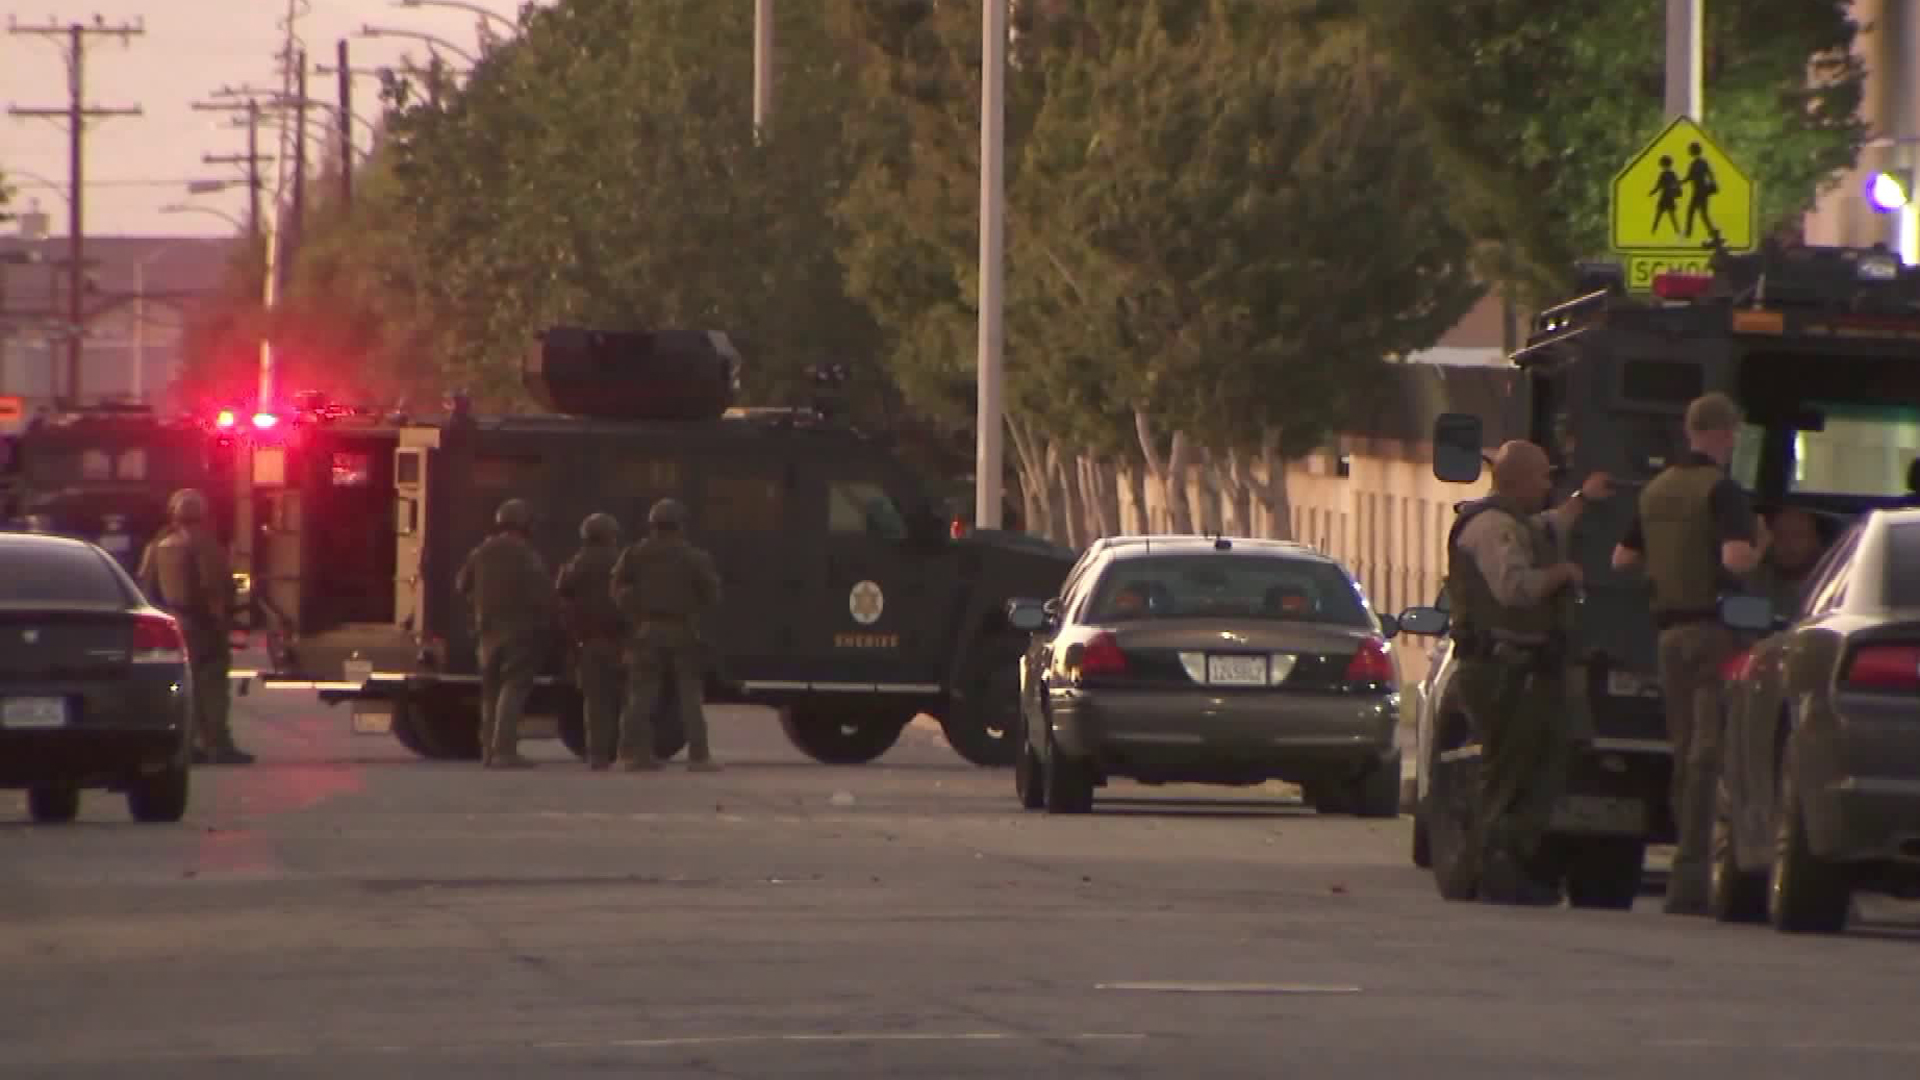 SWAT teams responded to Lancaster after a shooting left a deputy injured in Lancaster on Aug. 21, 2019. (Credit: KTLA)